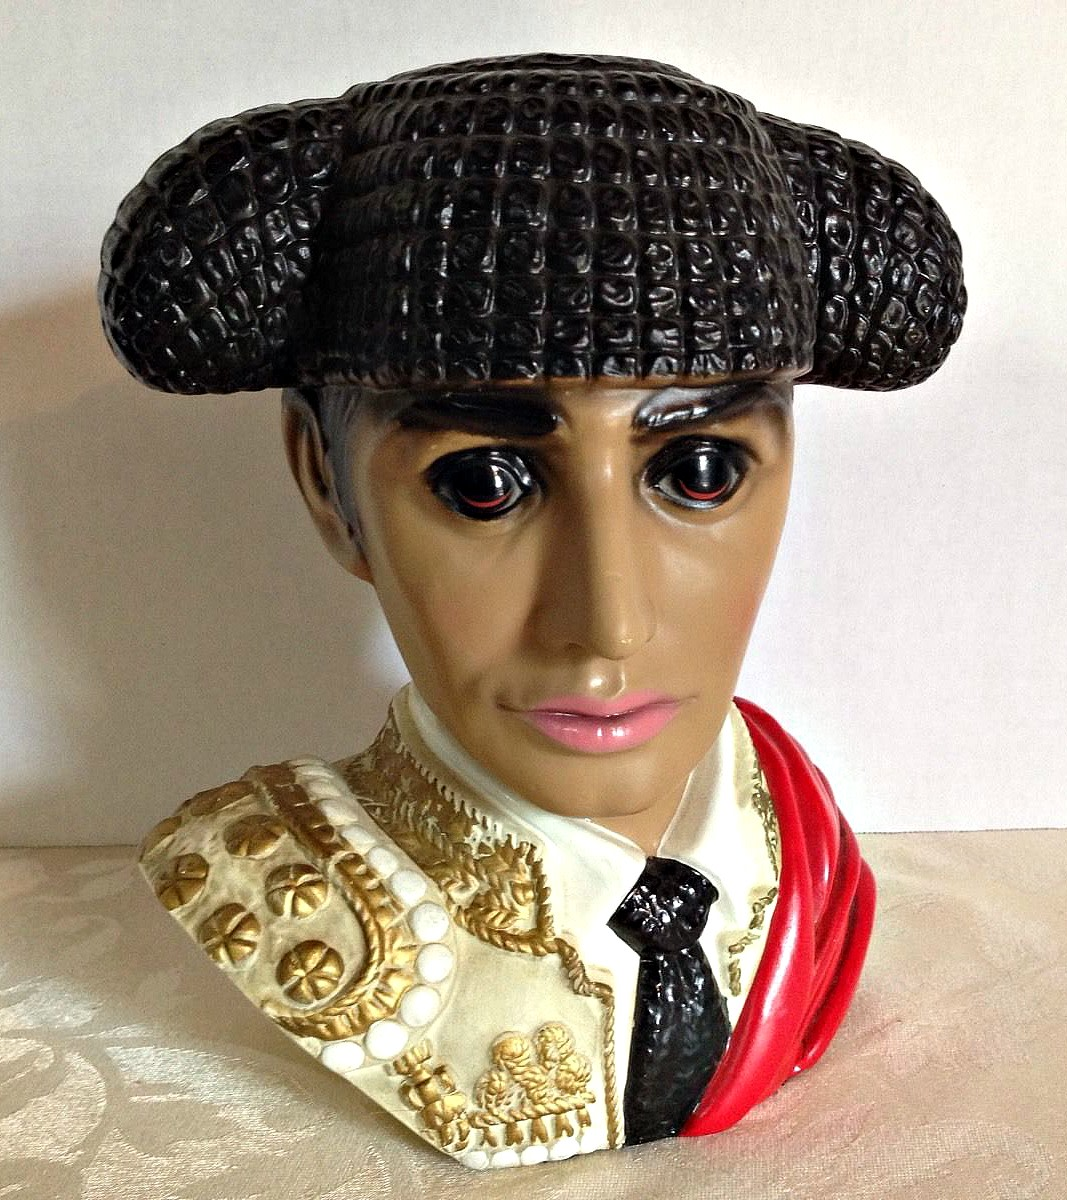 Vintage bust is of a Spanish Matador or what we call a Bull Fighter , and he is in great vibrant red, gold and black coloring with great life-like eyes.